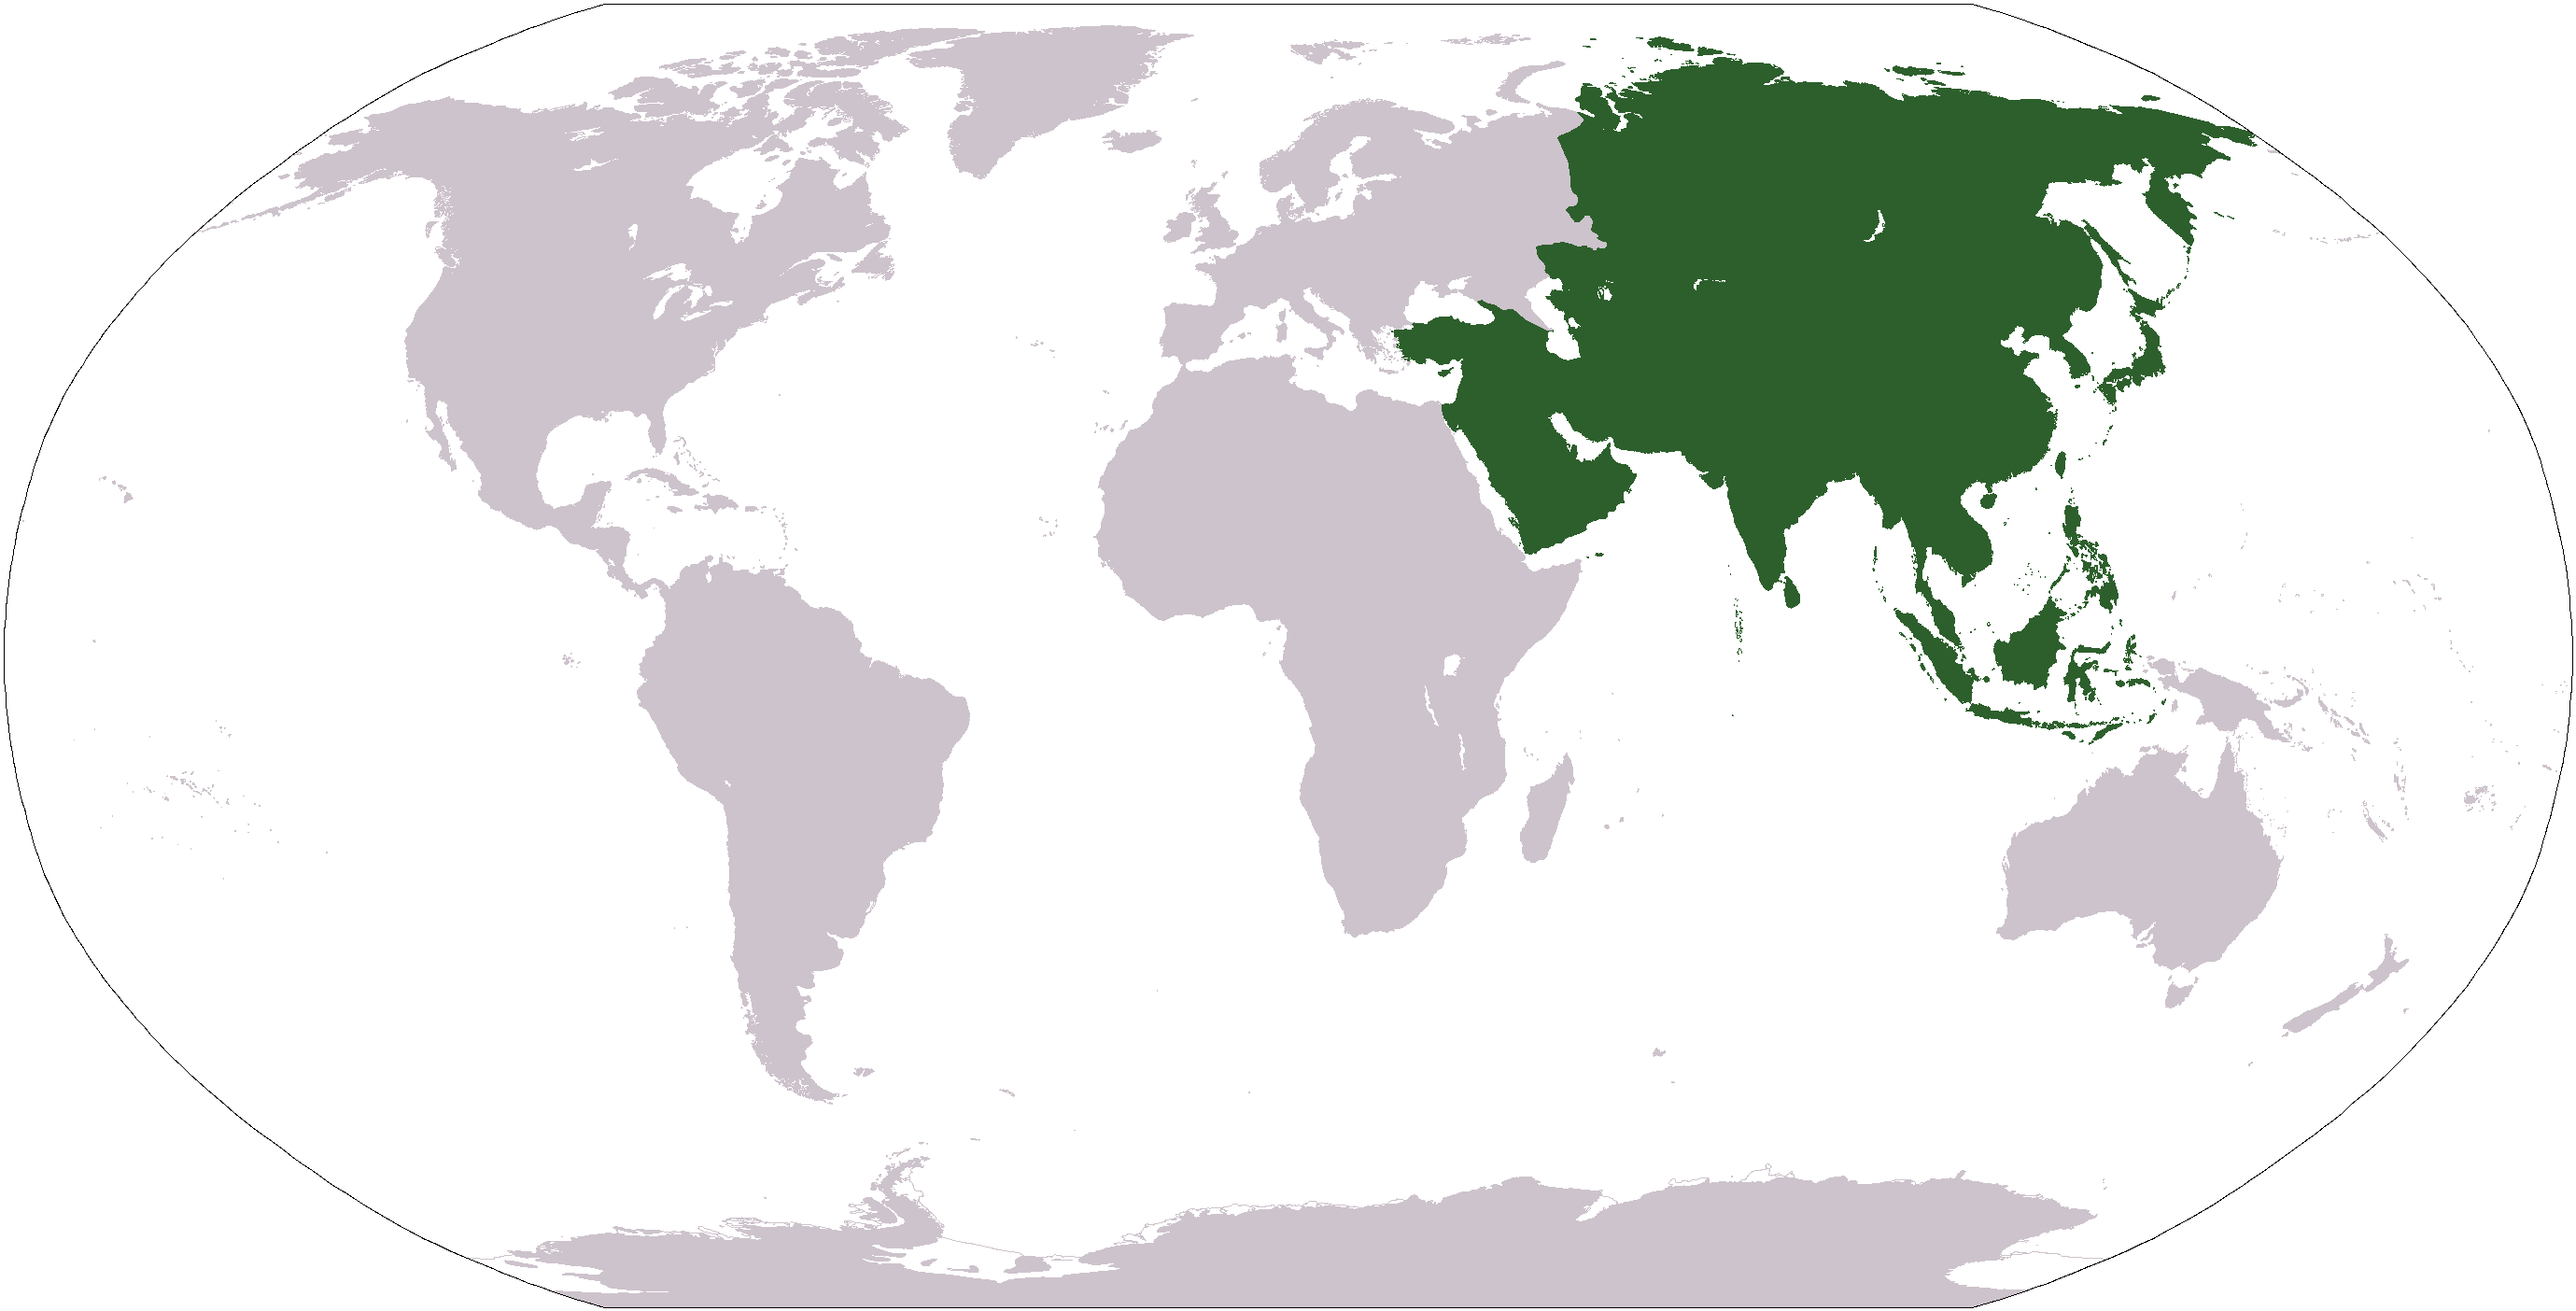 Countries Of Asia Continent